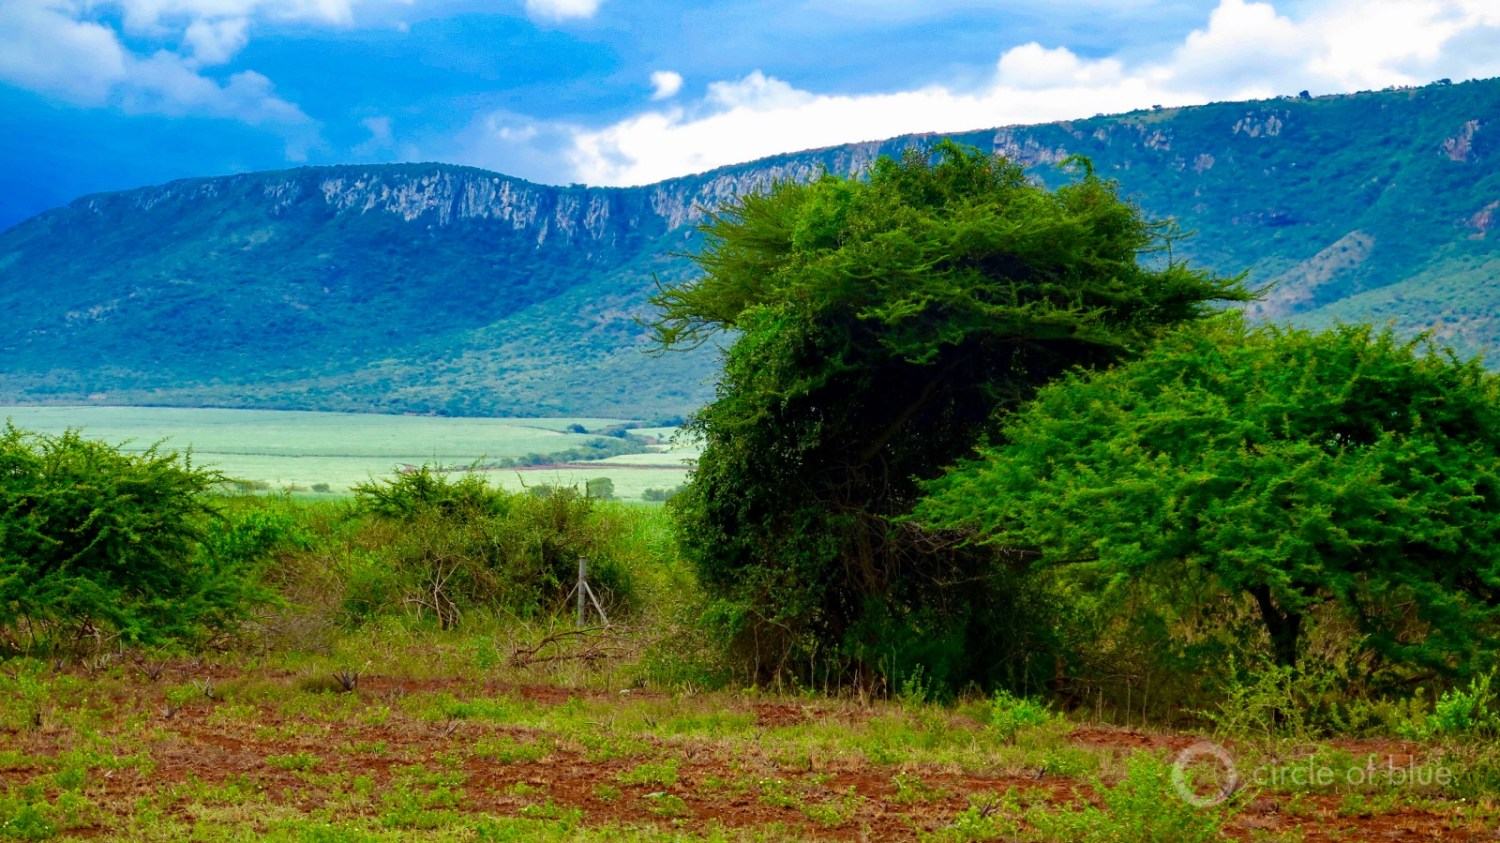 Sugar cane fields in northern Kwazulu-Natal province lap at the feet of the region's tabletop ridges.